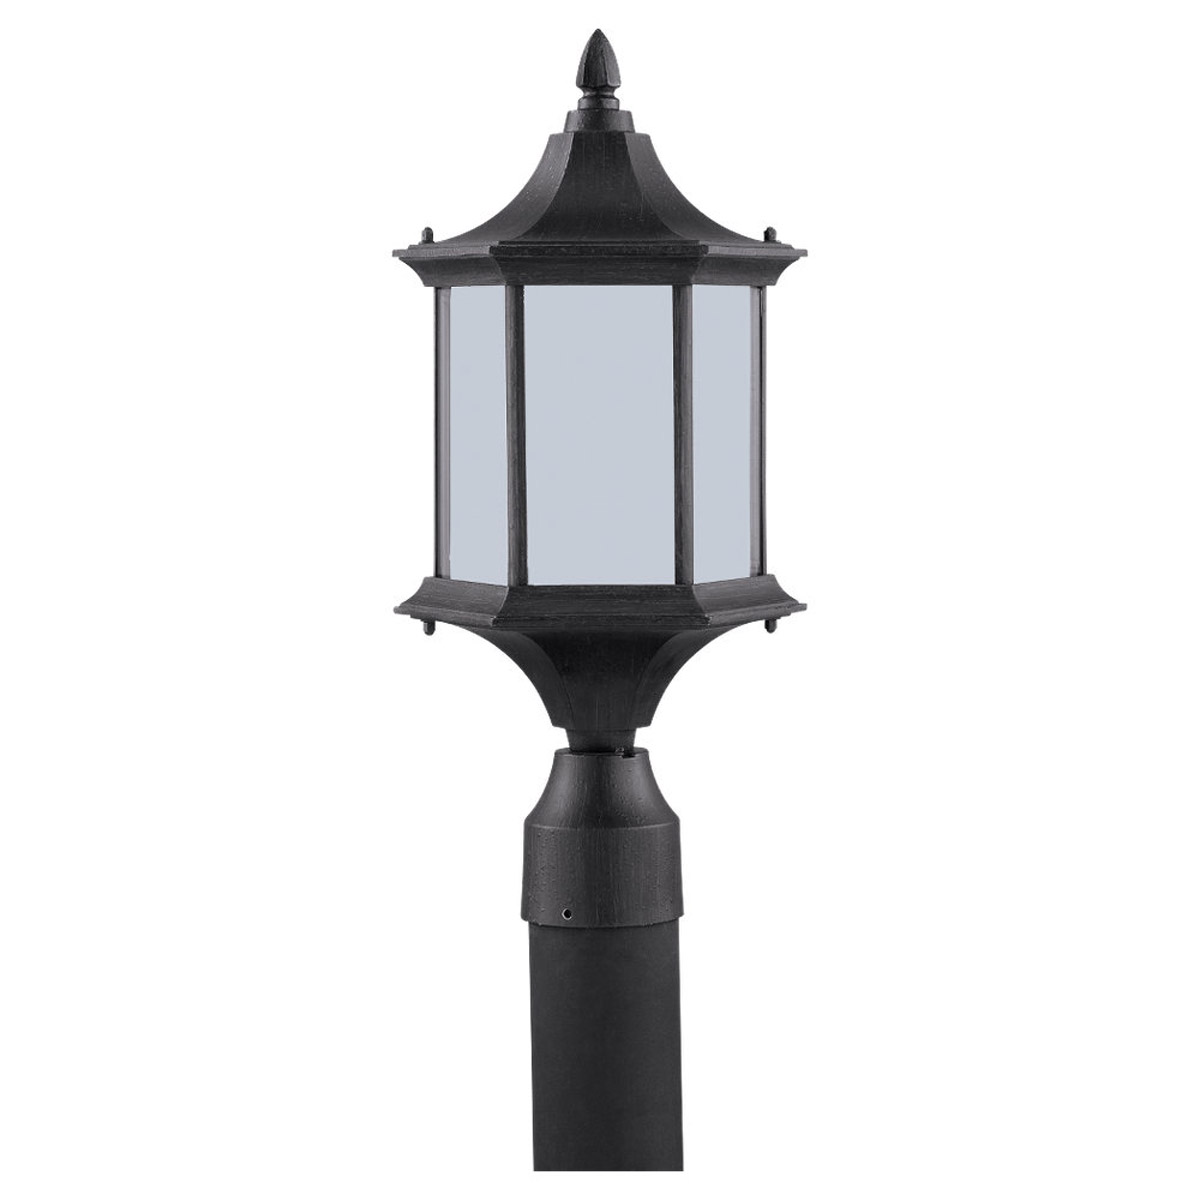 Sea Gull Lighting Ardsley Court 1 Light Outdoor Post Lantern in Textured Rust Patina 89236PBLE-08